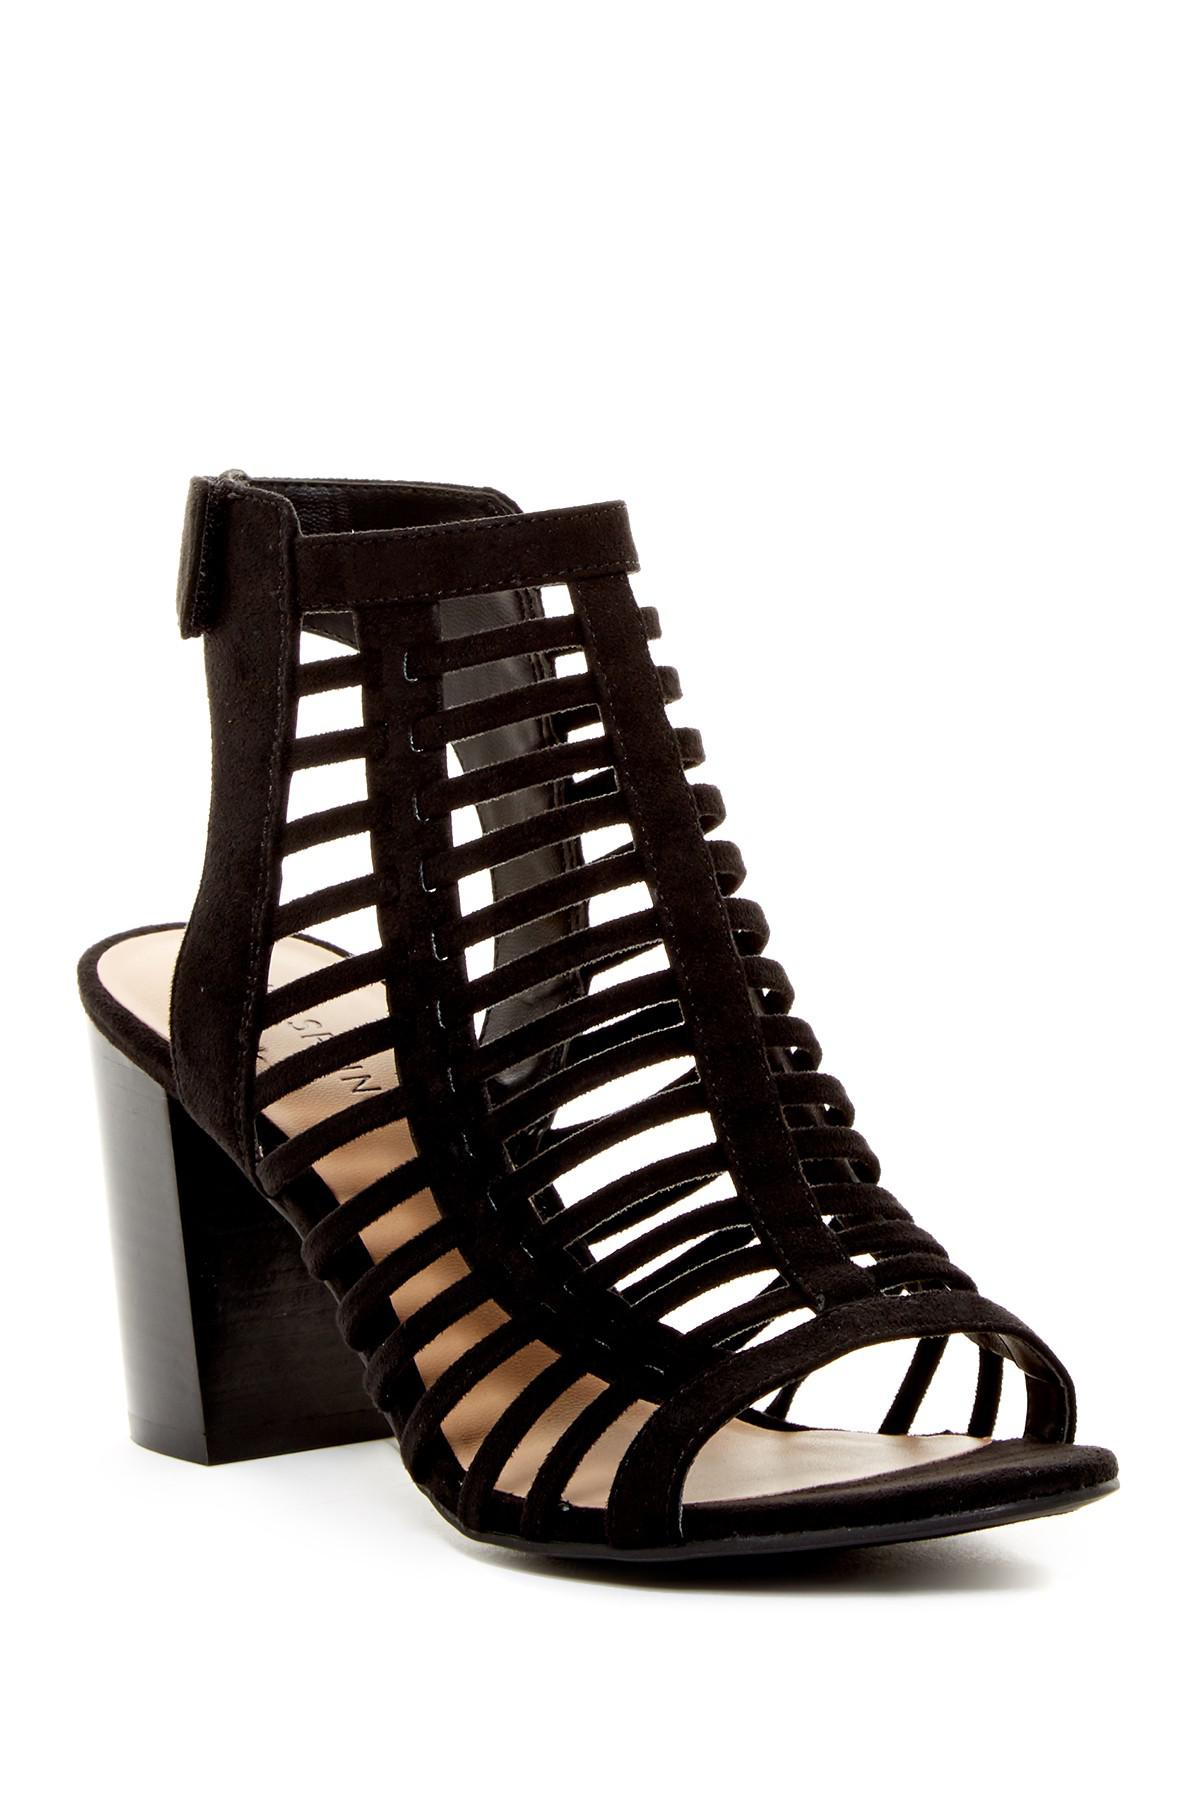 a2263126fce Lyst - Call It Spring Miriradia Caged Sandal in Black